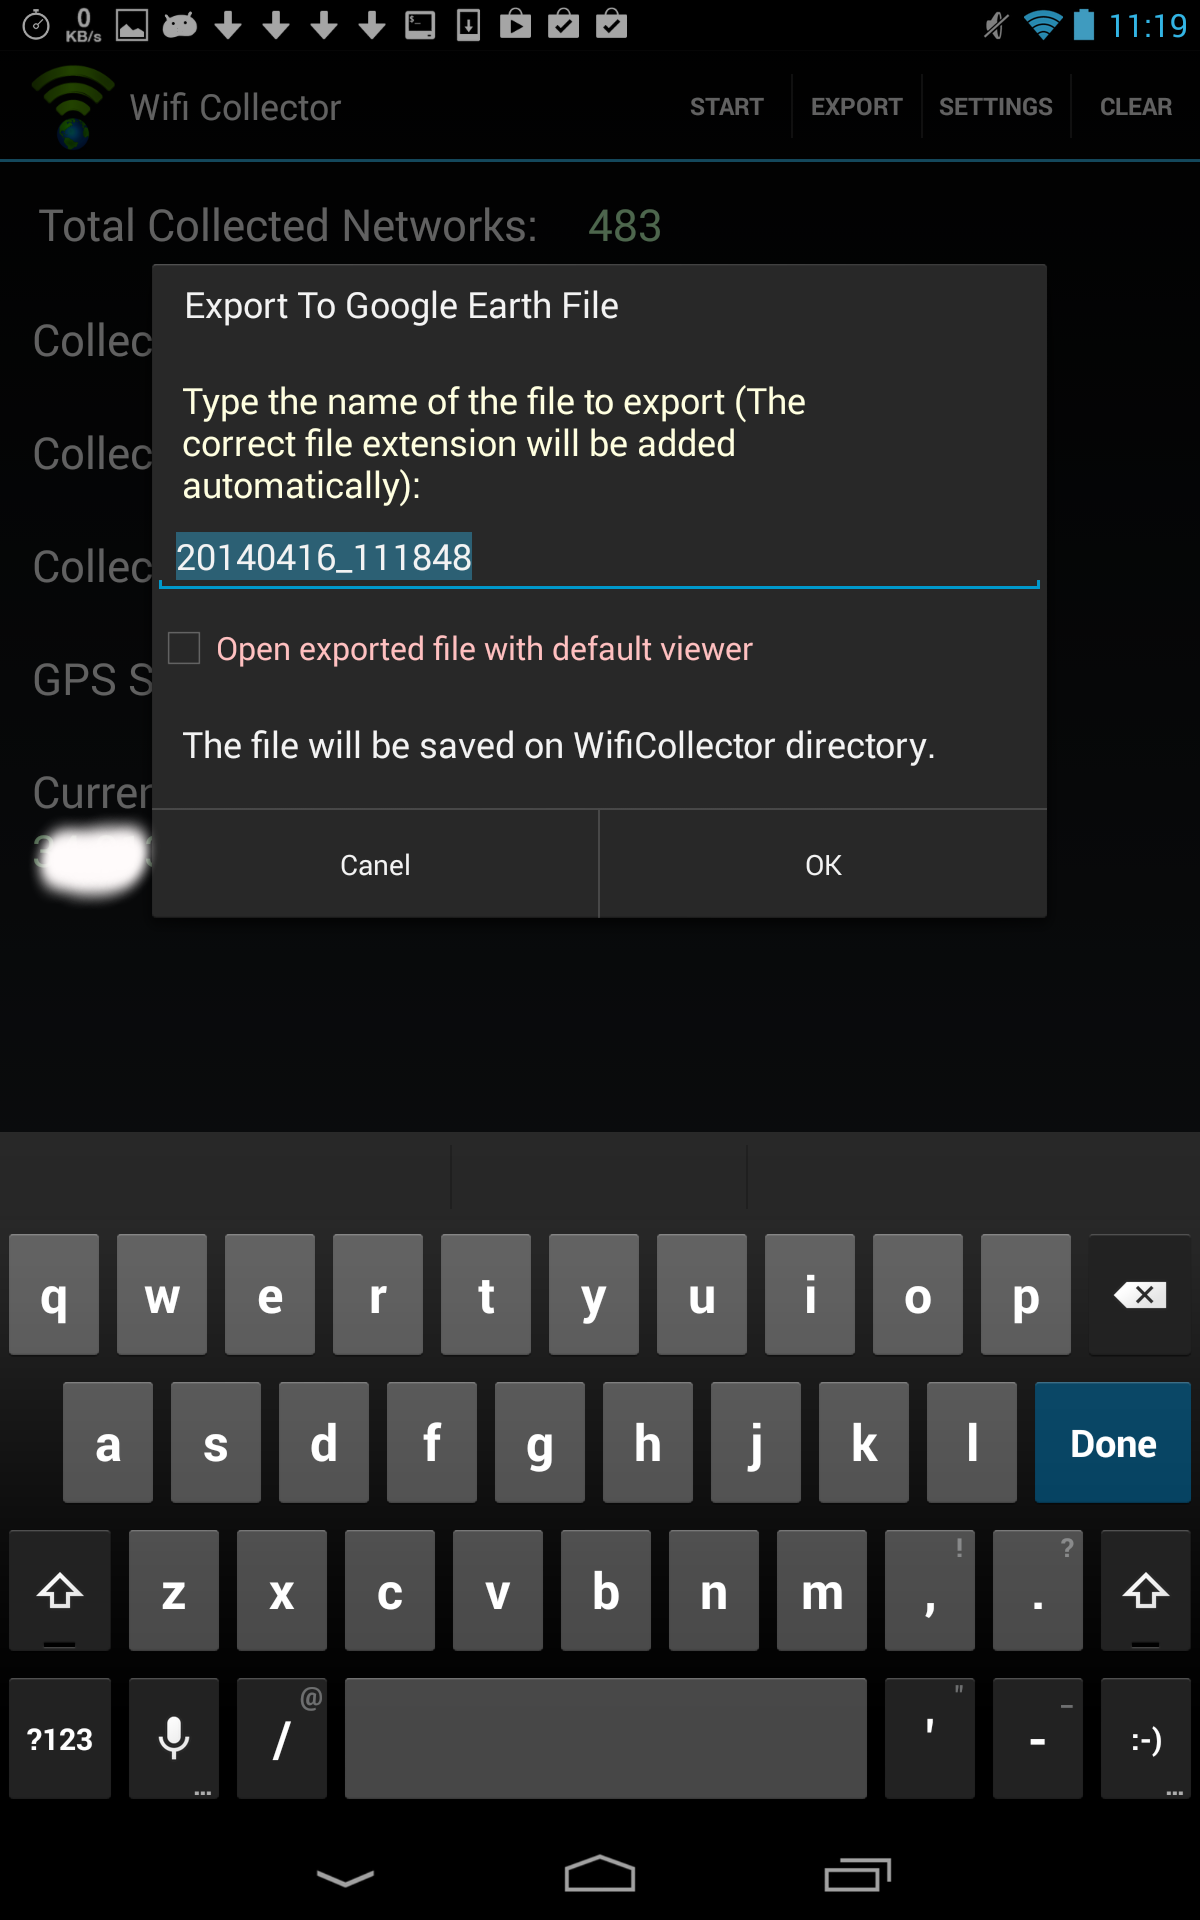 Wifi Collector - Collect wireless networks information and